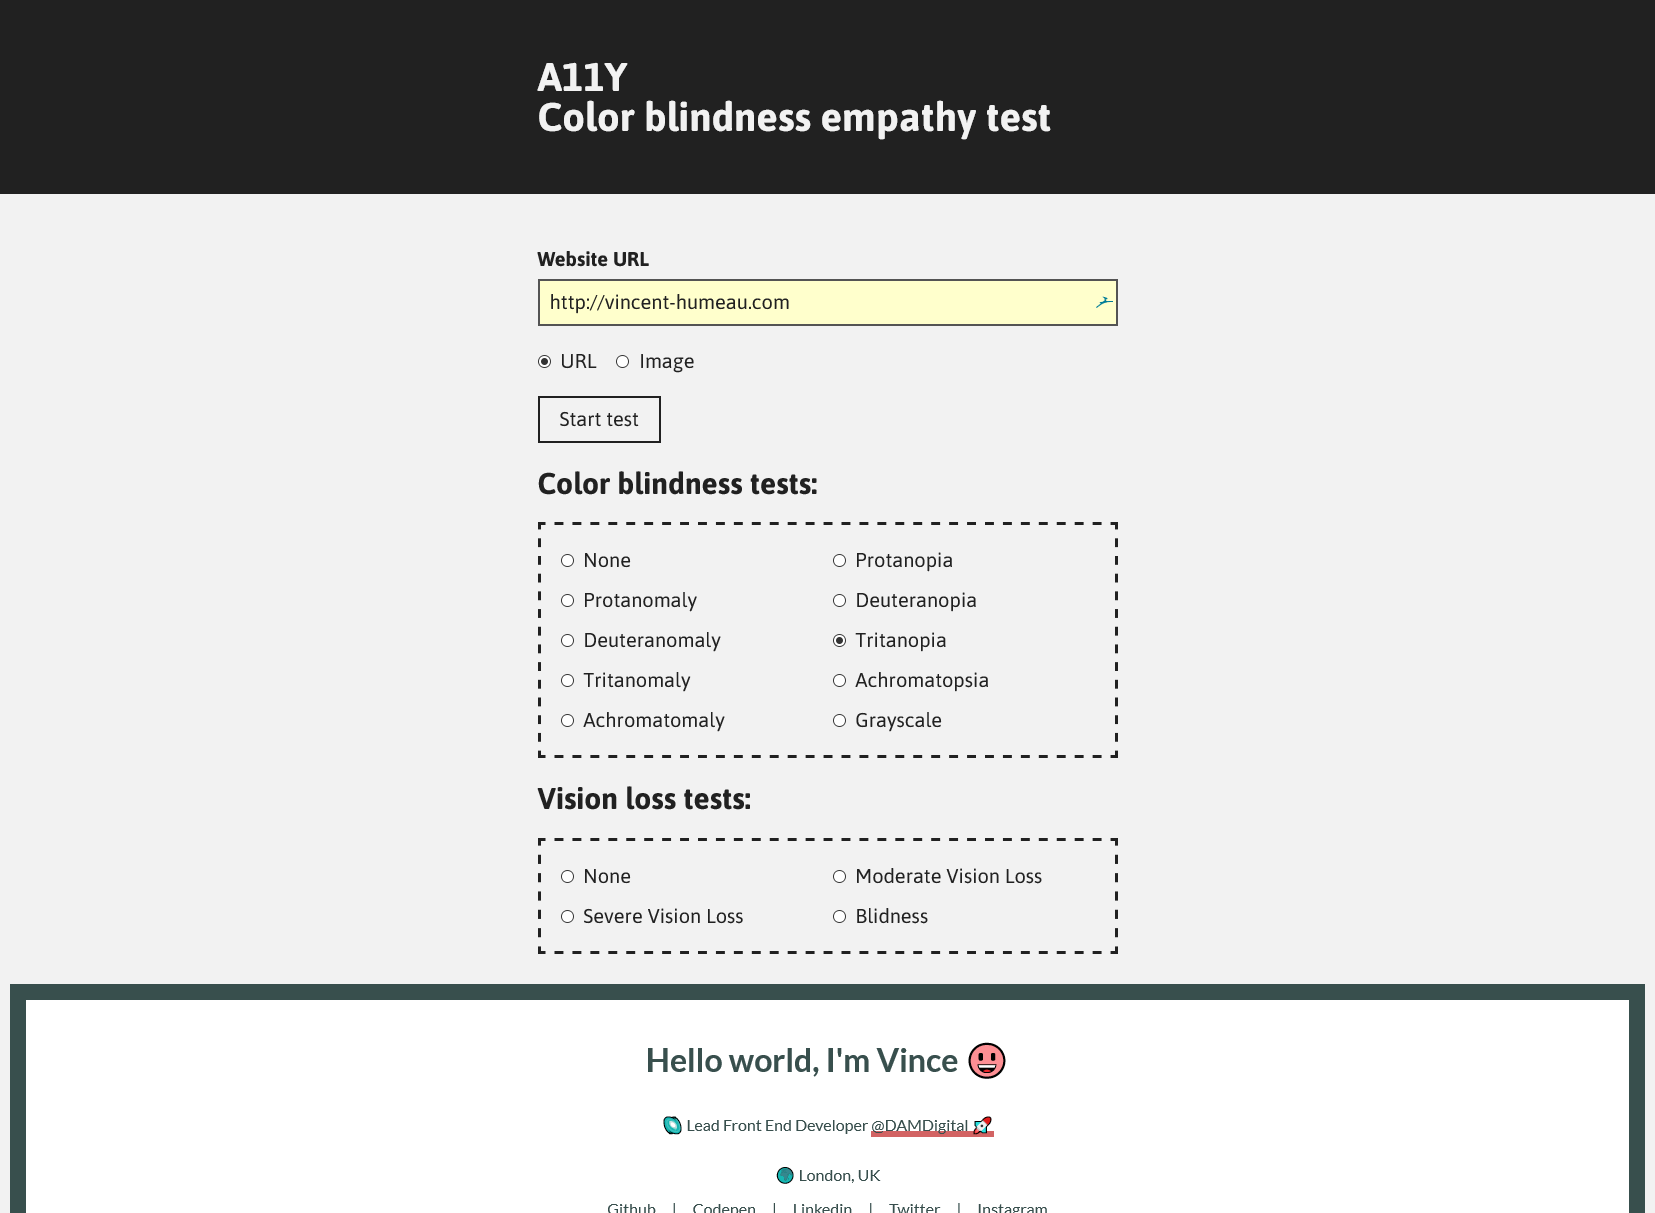 Screenshot of A11Y Color Blindness Empathy Test